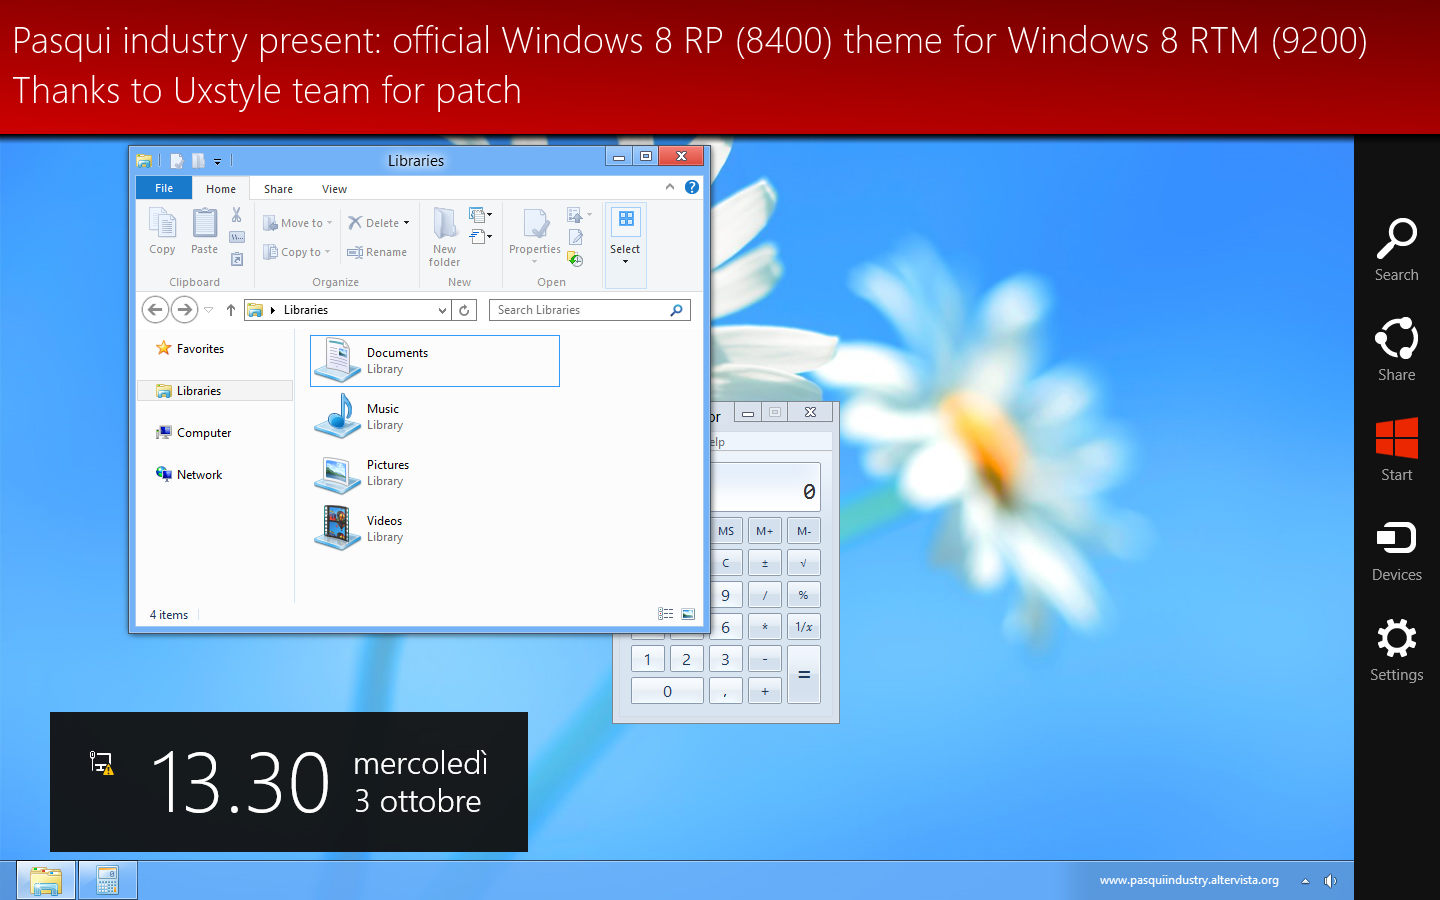 AeroRP theme for Windows 8 by Pasquiindustry